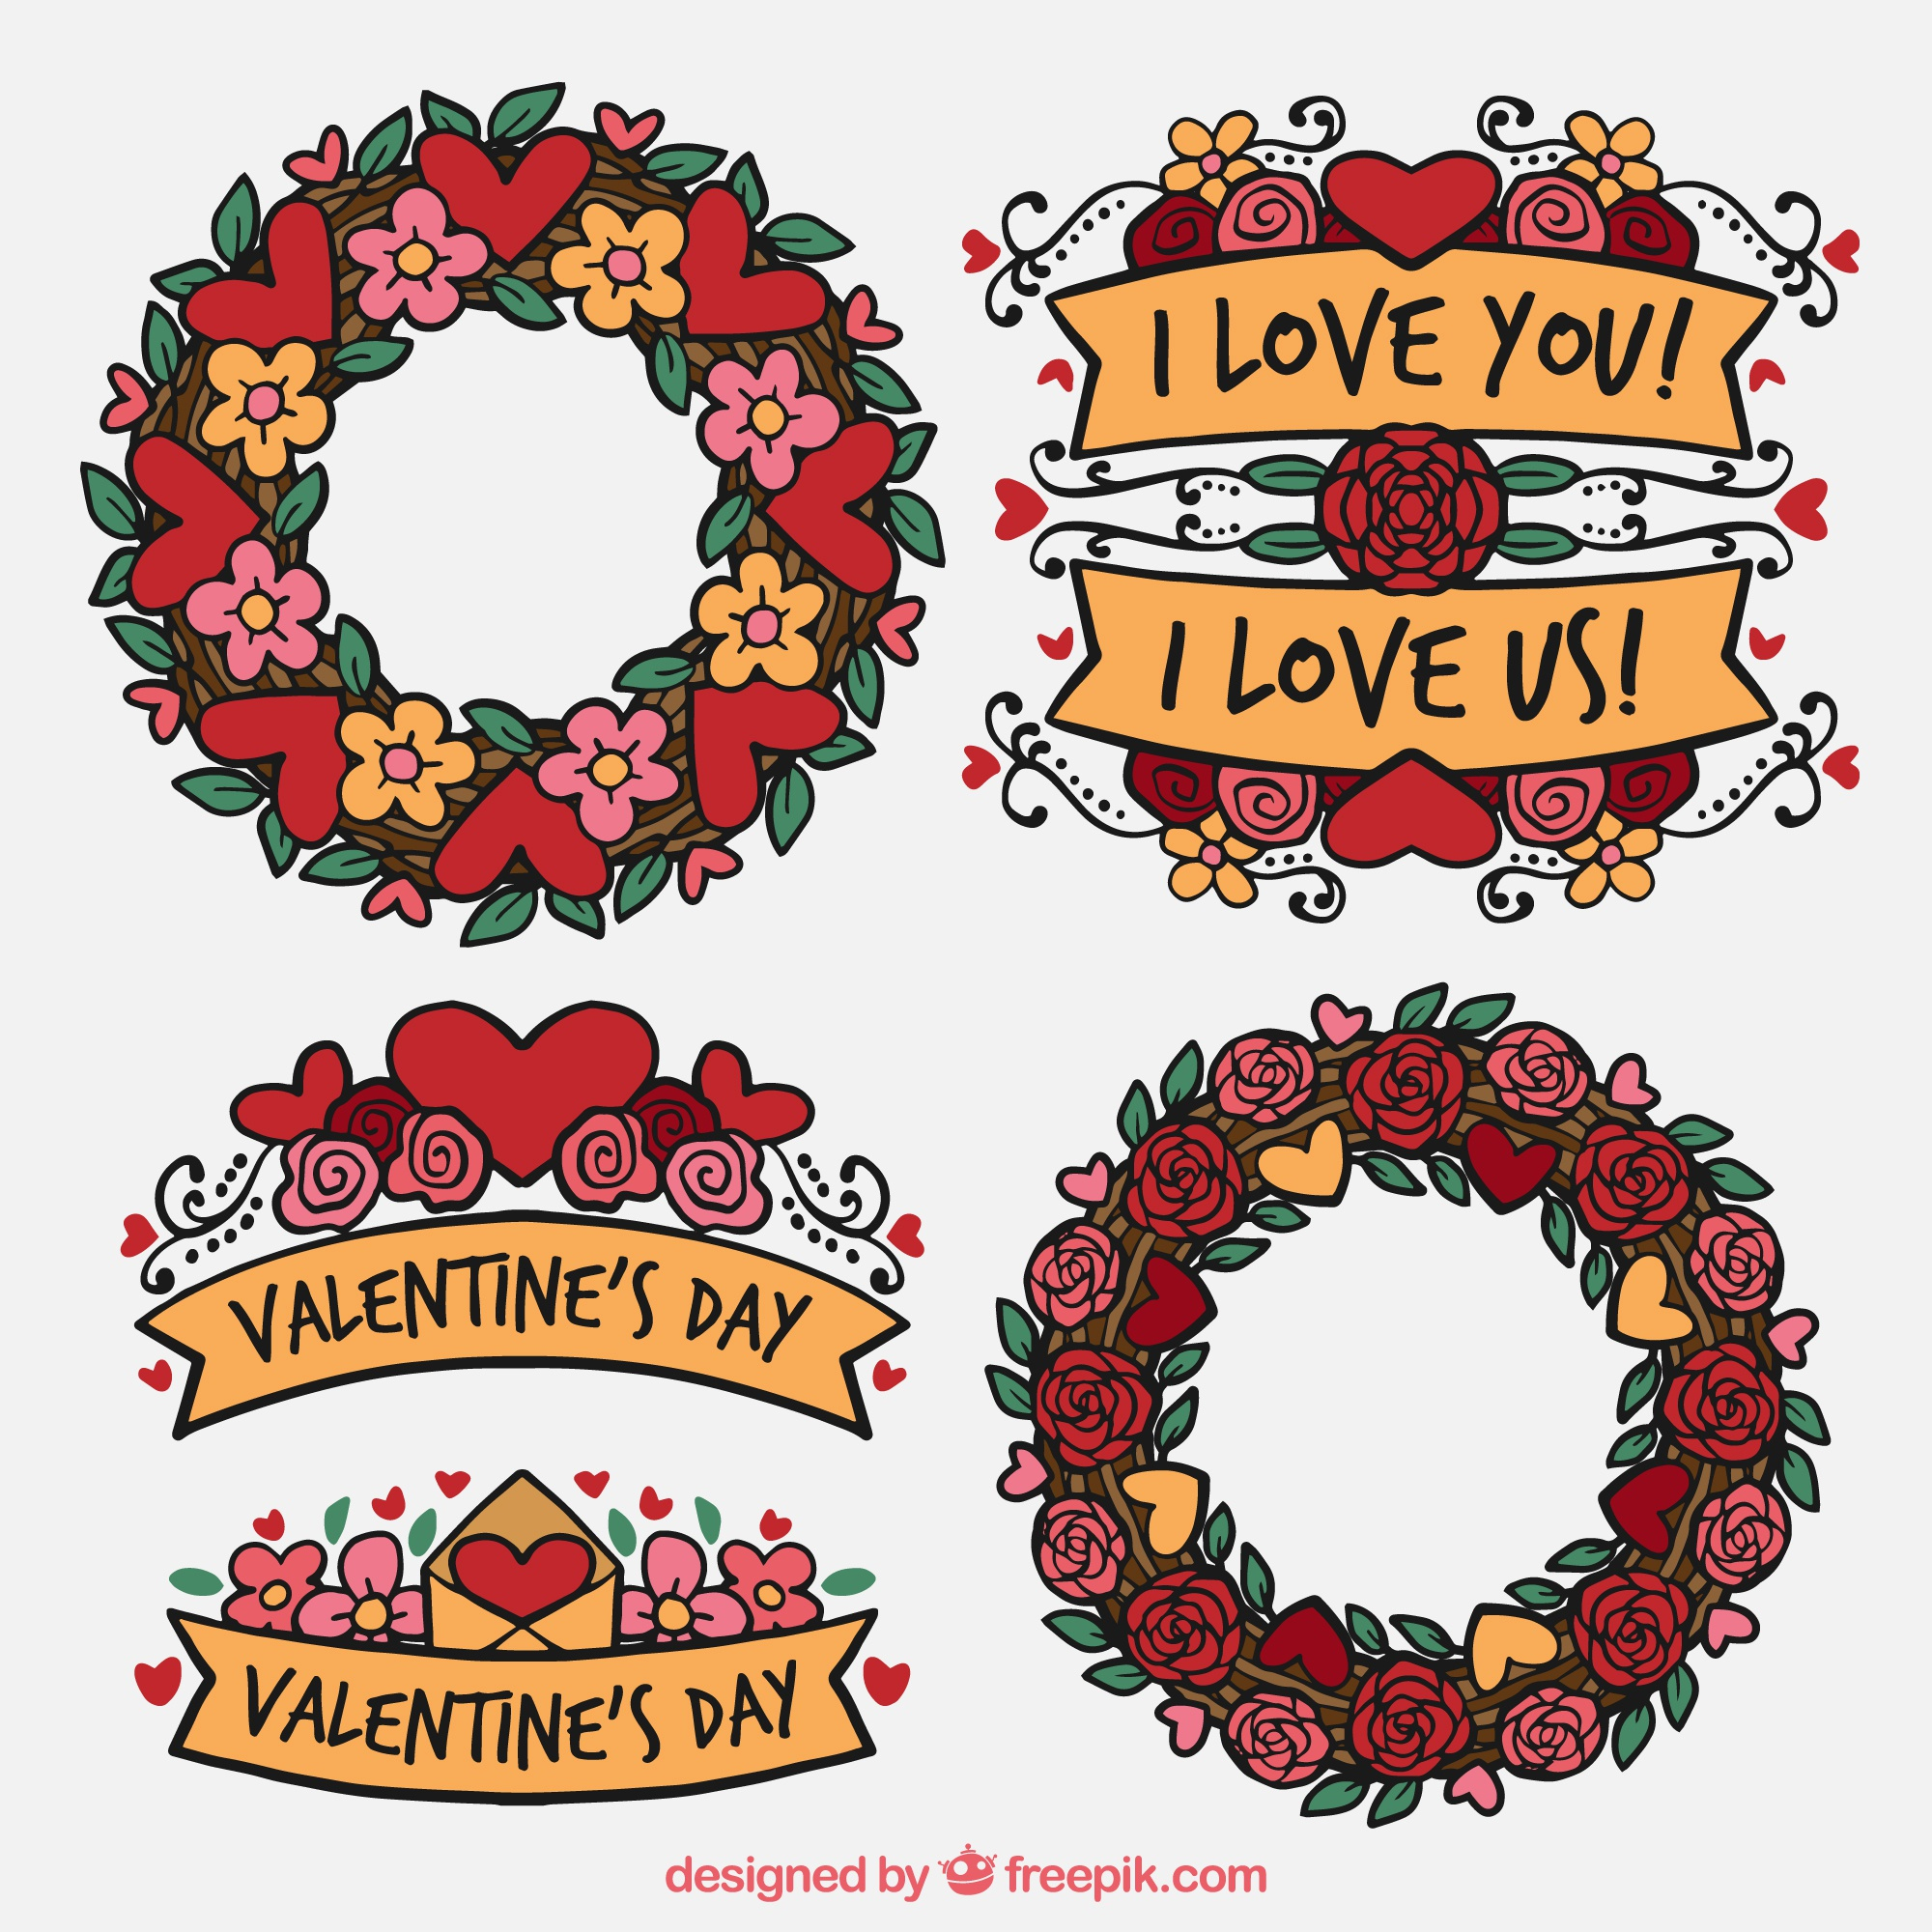 Pack of vintage floral wreaths and ribbons for valentine